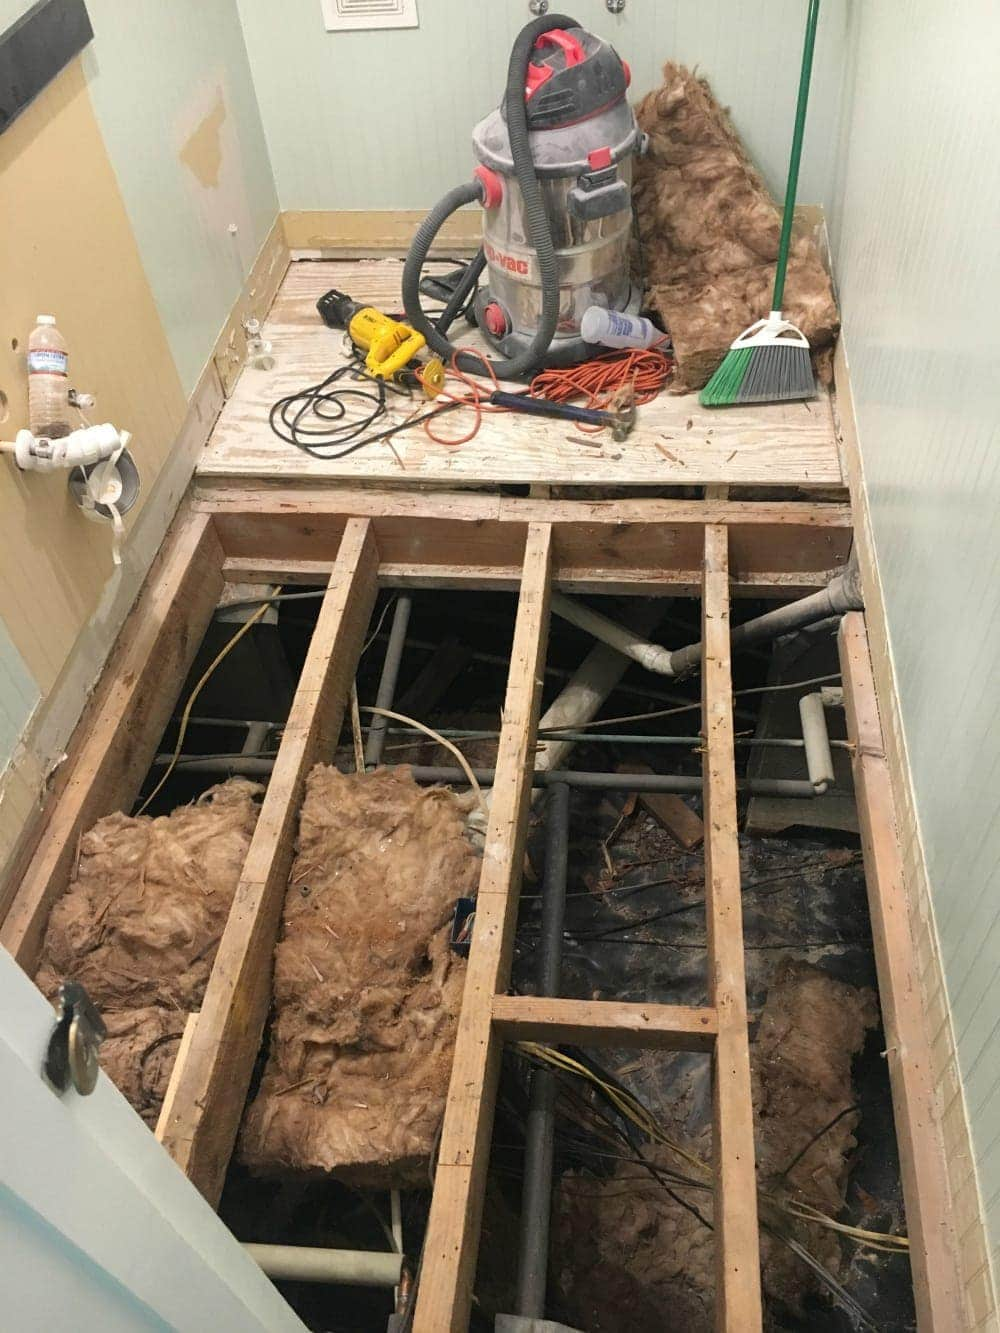 Questions to always ask before hiring contractors - a ripped out bathroom floor